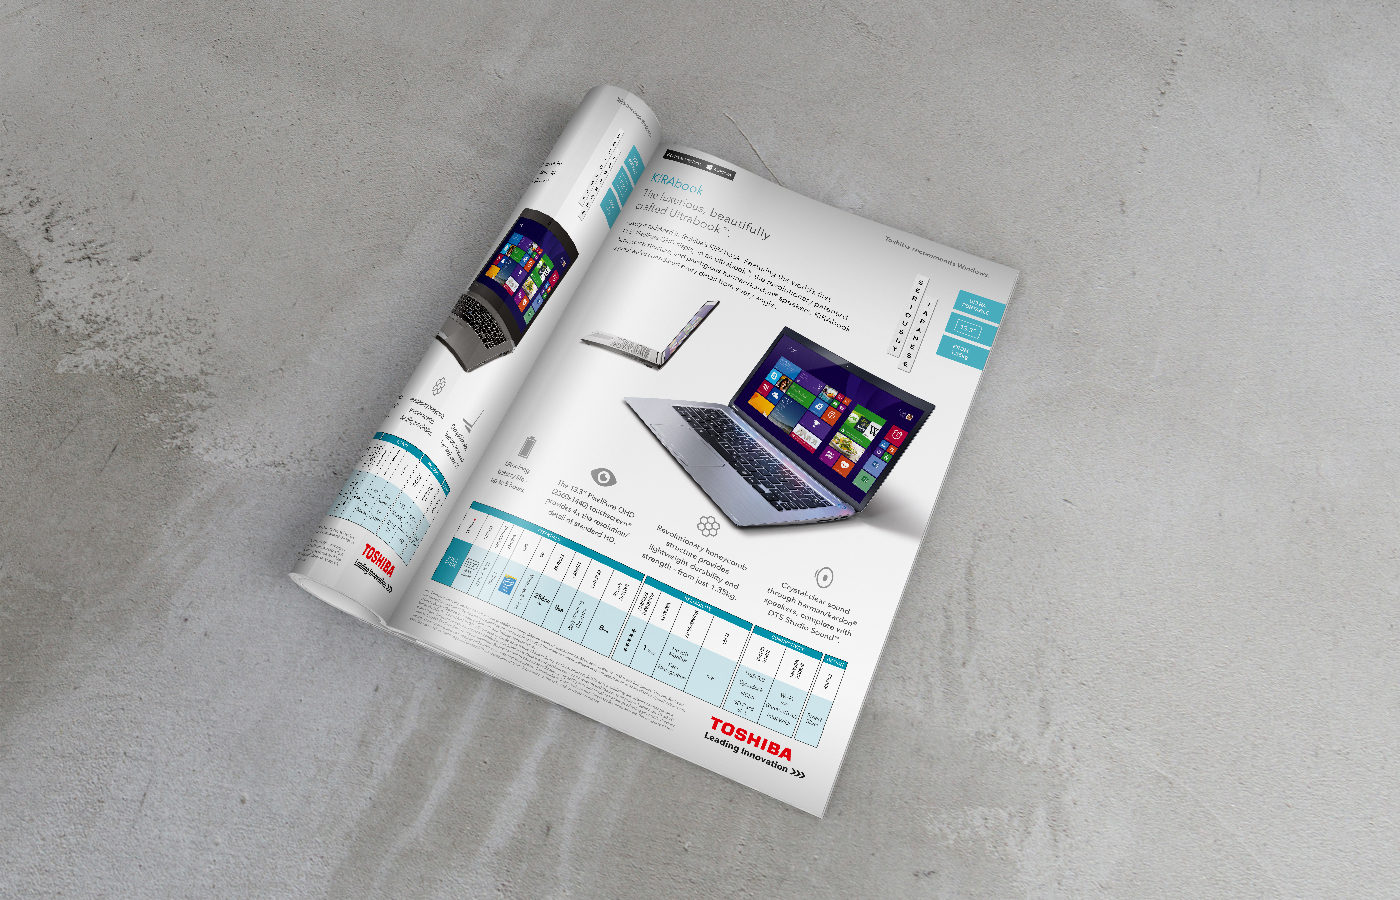 Toshiba business range brochure design product spread